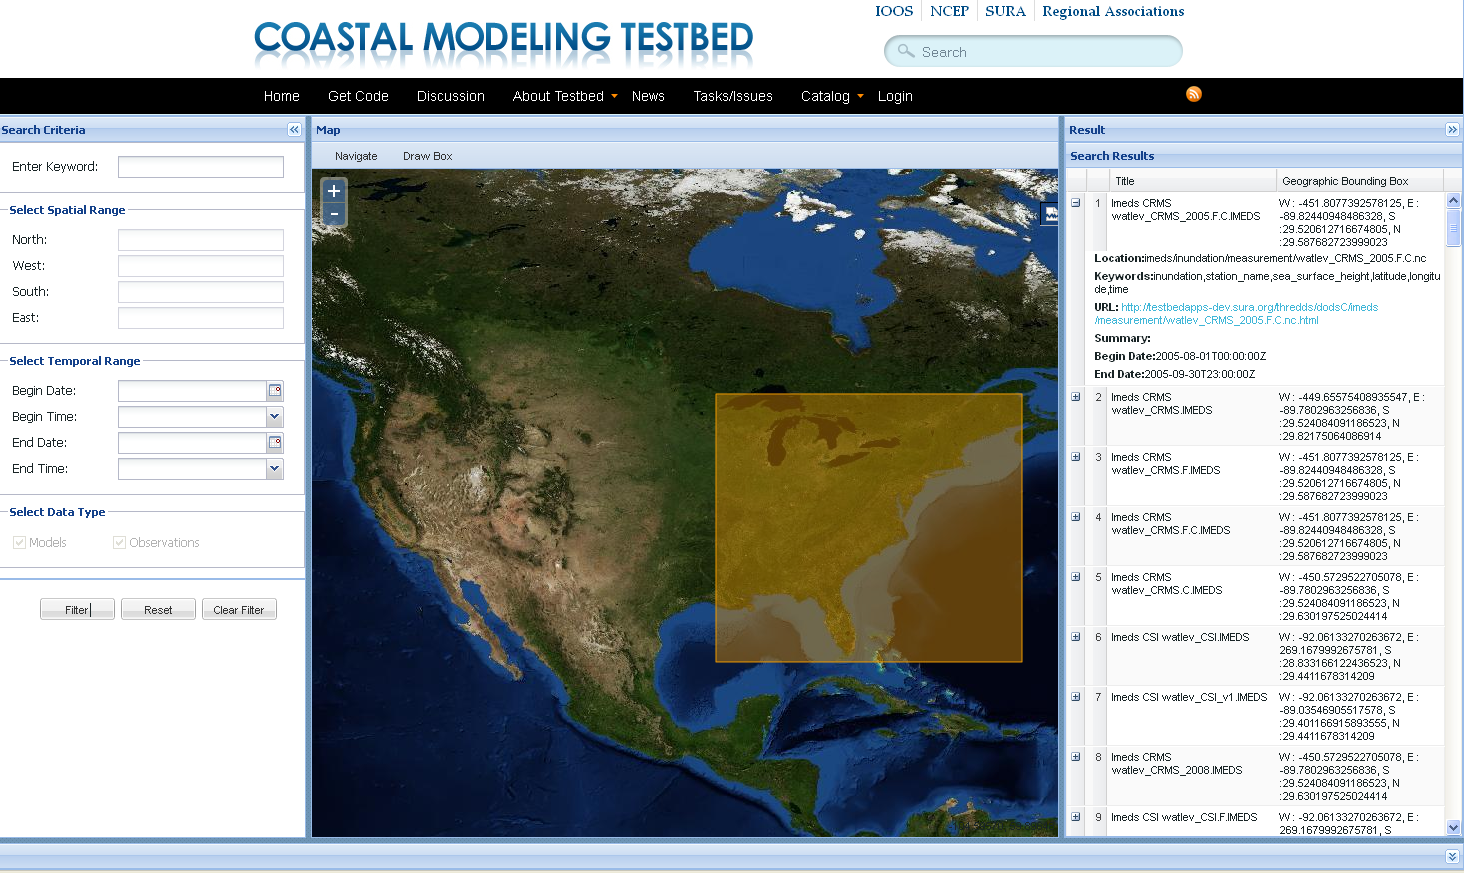 The testbed site allows for selection of distinct regions